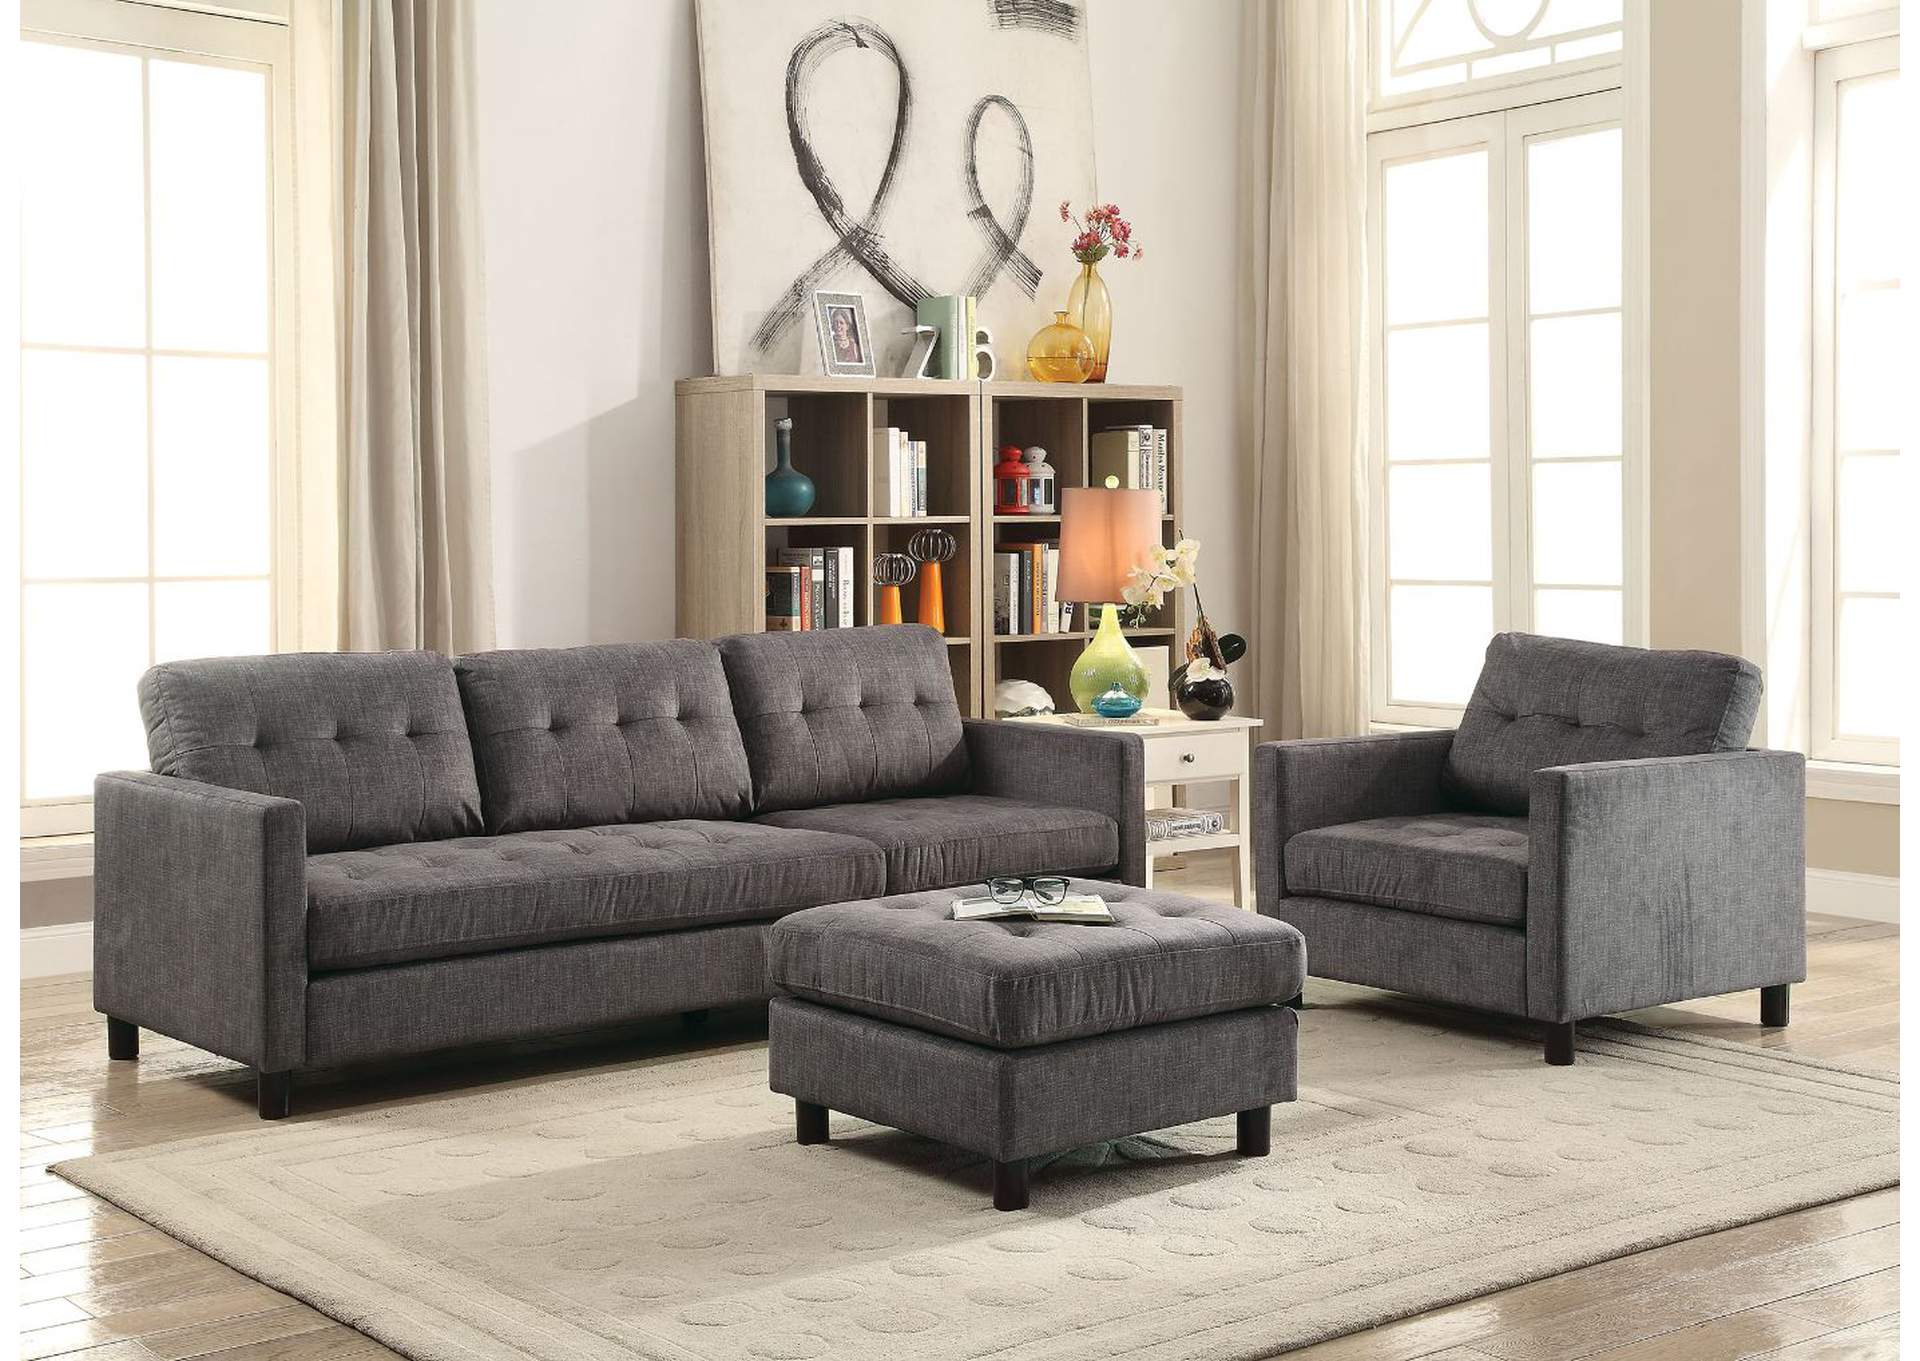 Ceasar Gray Fabric Sectional Sofa,Acme